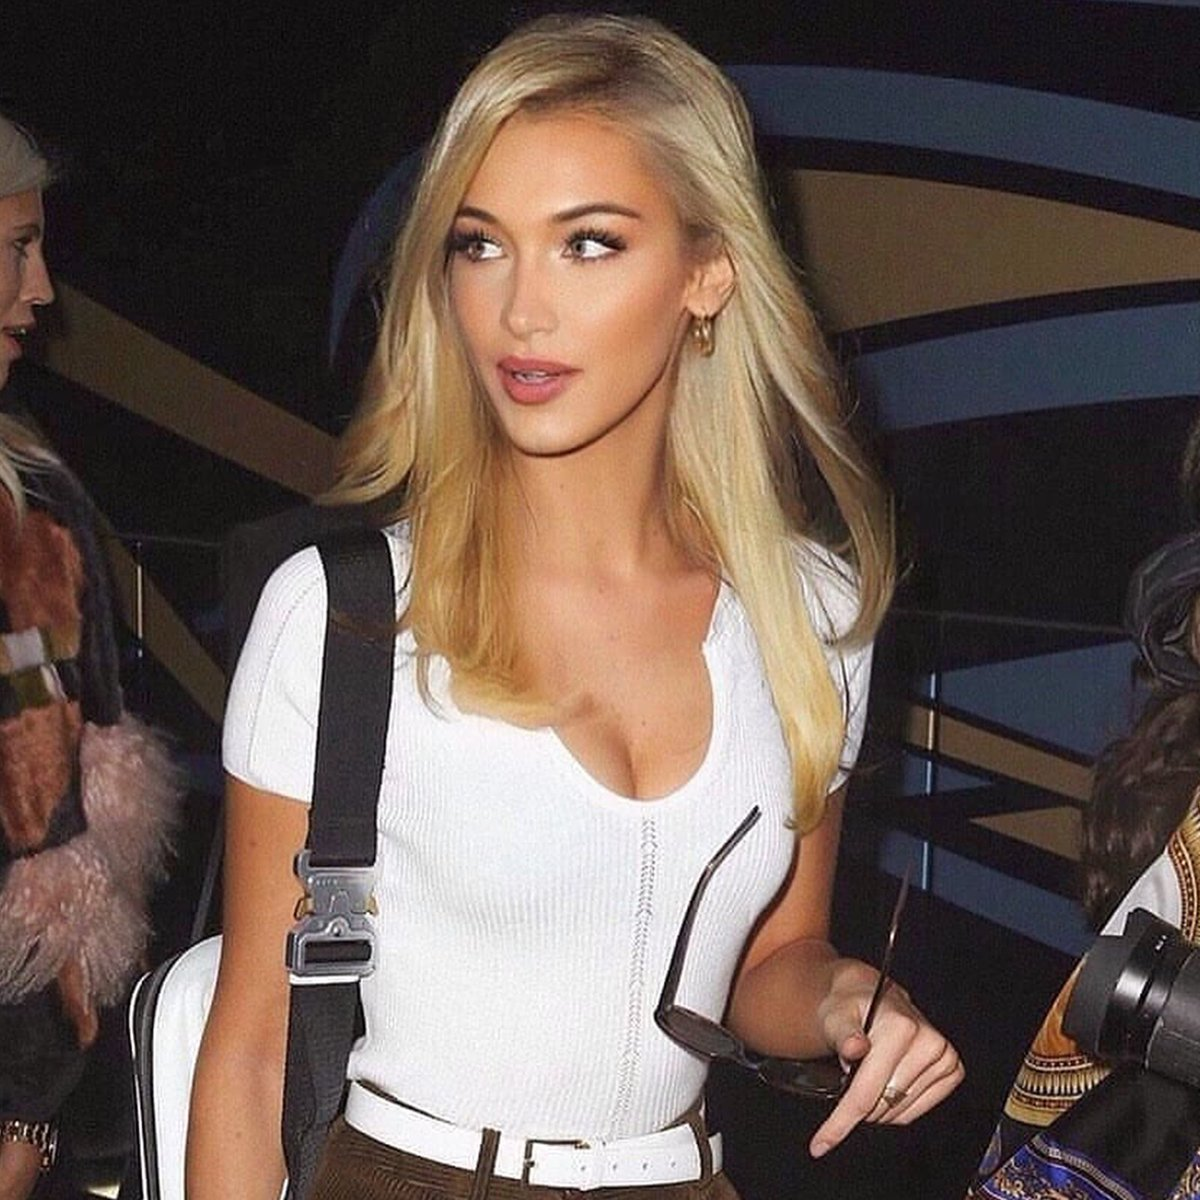 Oh Polly On Twitter Okay Bella Hadid As A Blonde Issa Look